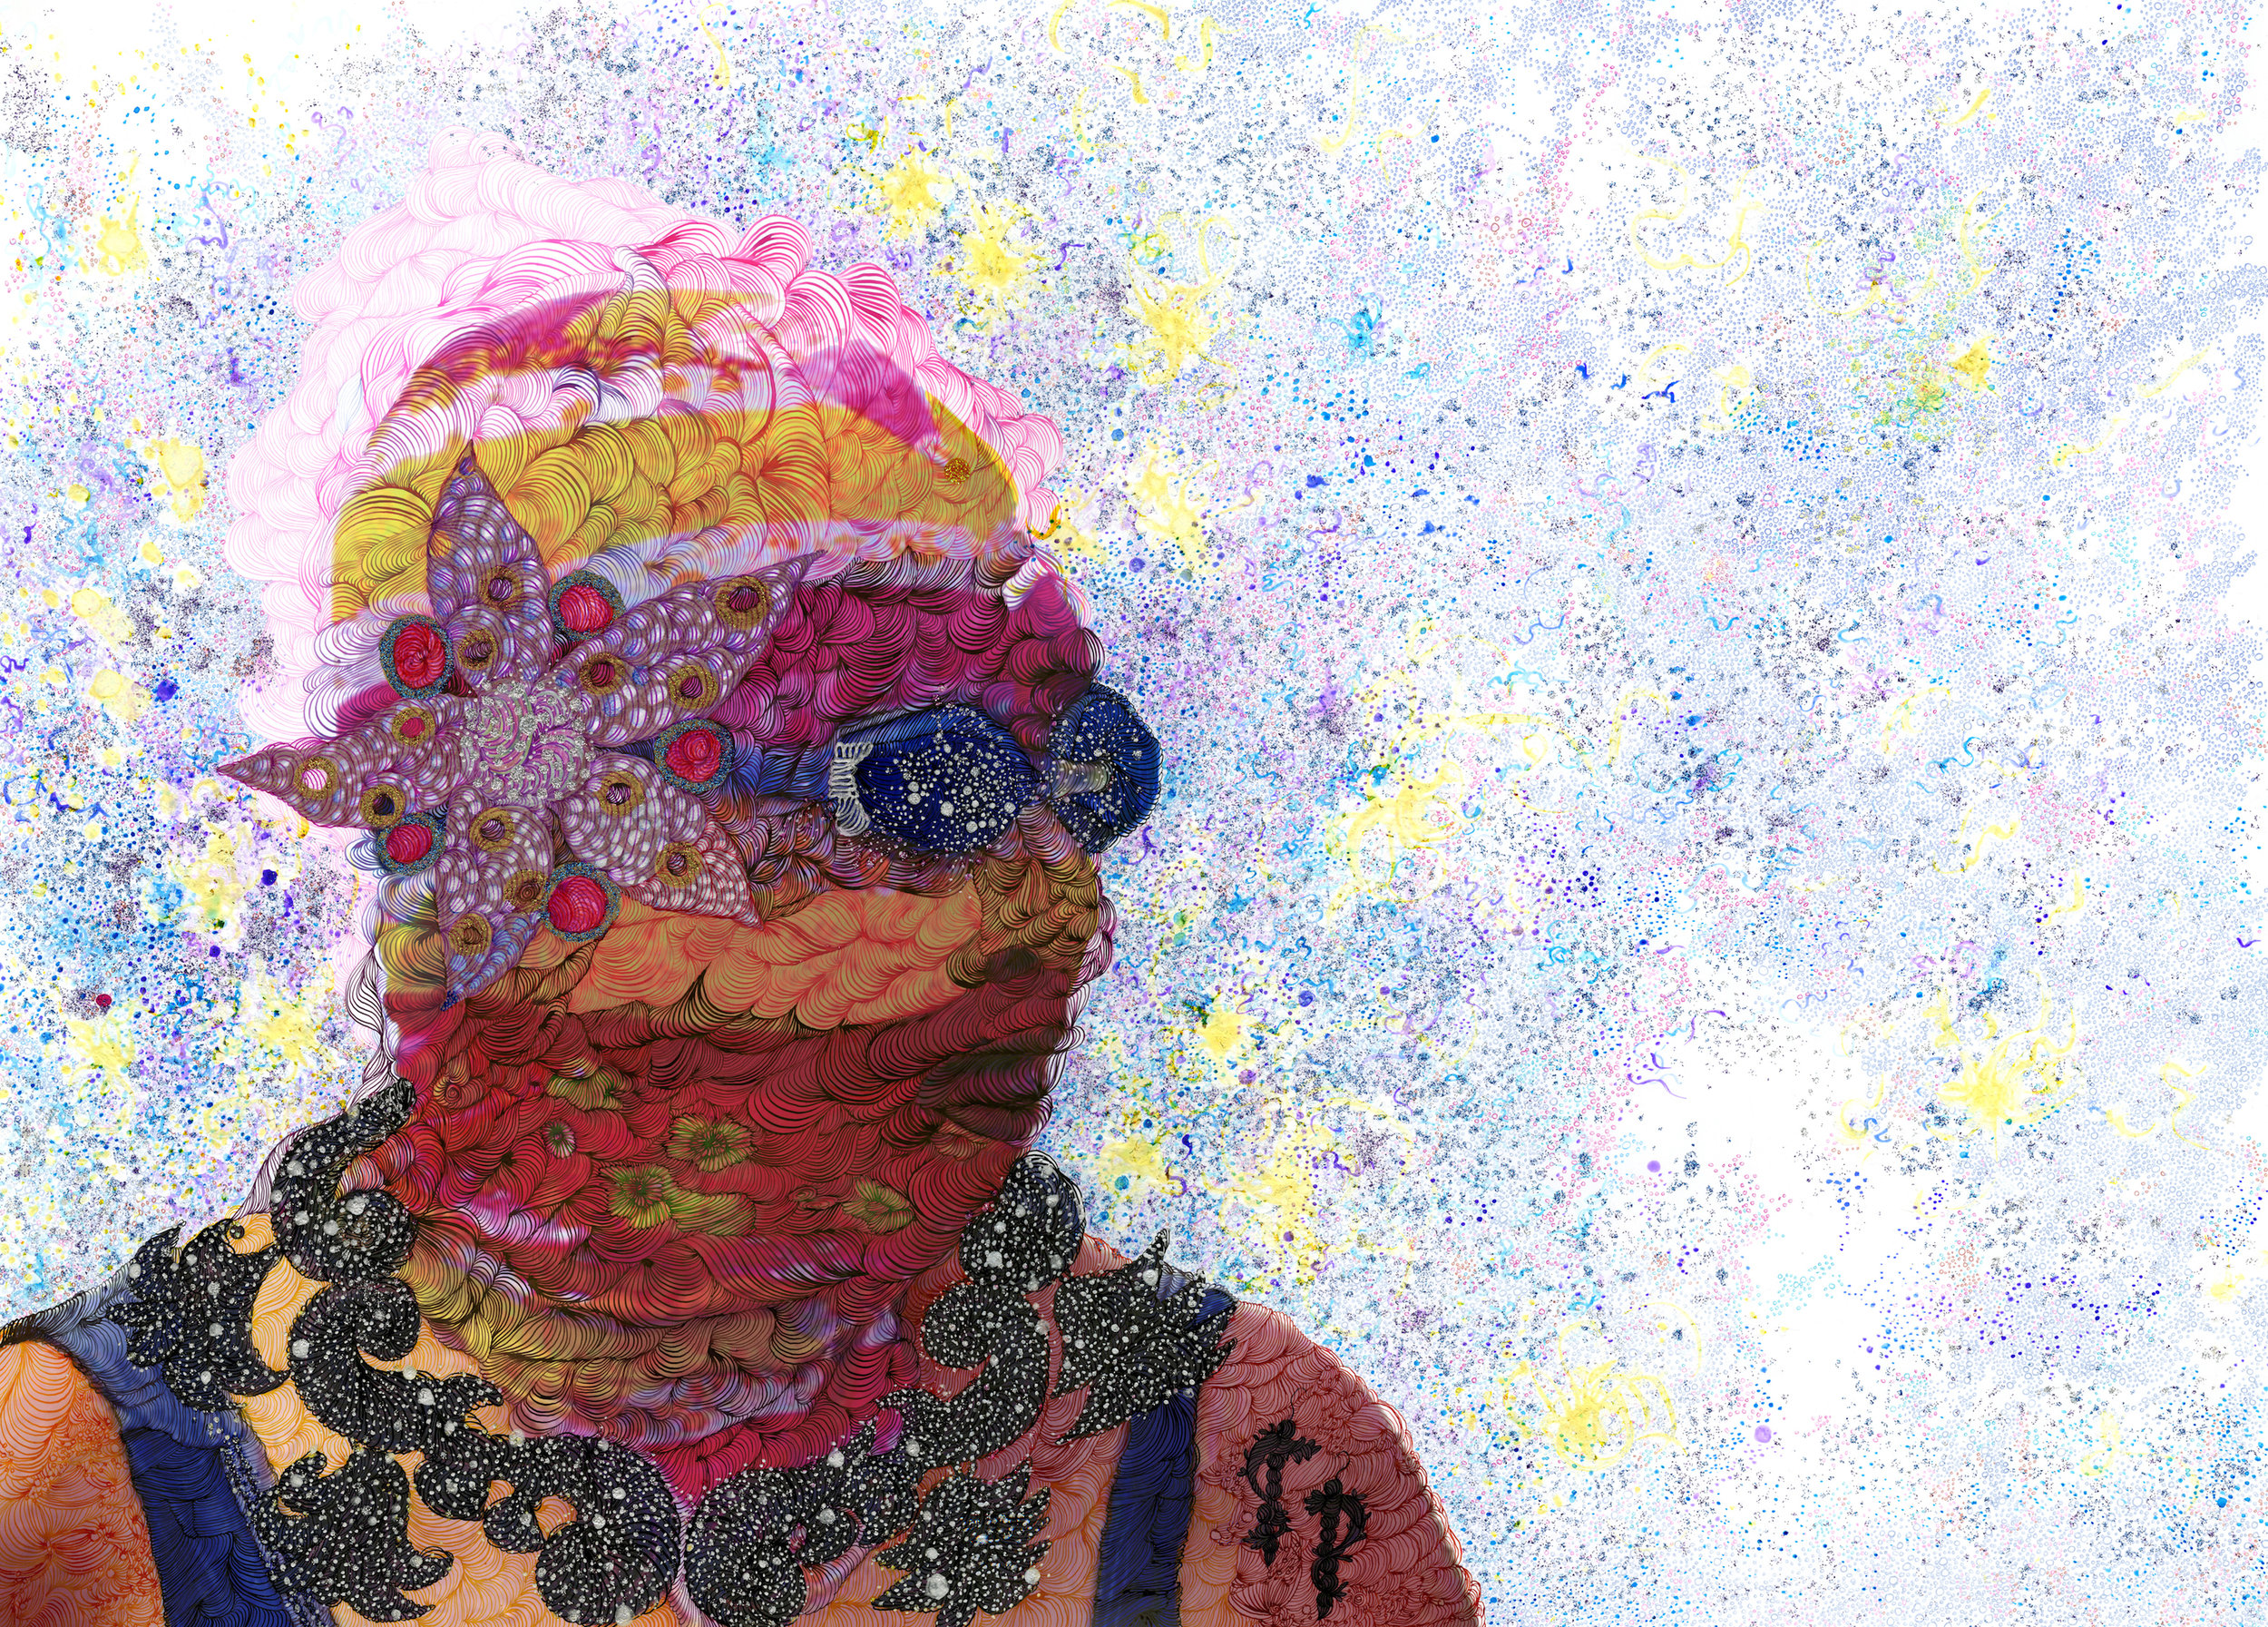 Oxymoron  , 2015 Ink, color pencil, glitter, flashe, and marker on digital photo collage 19.5 x 27.5 inches